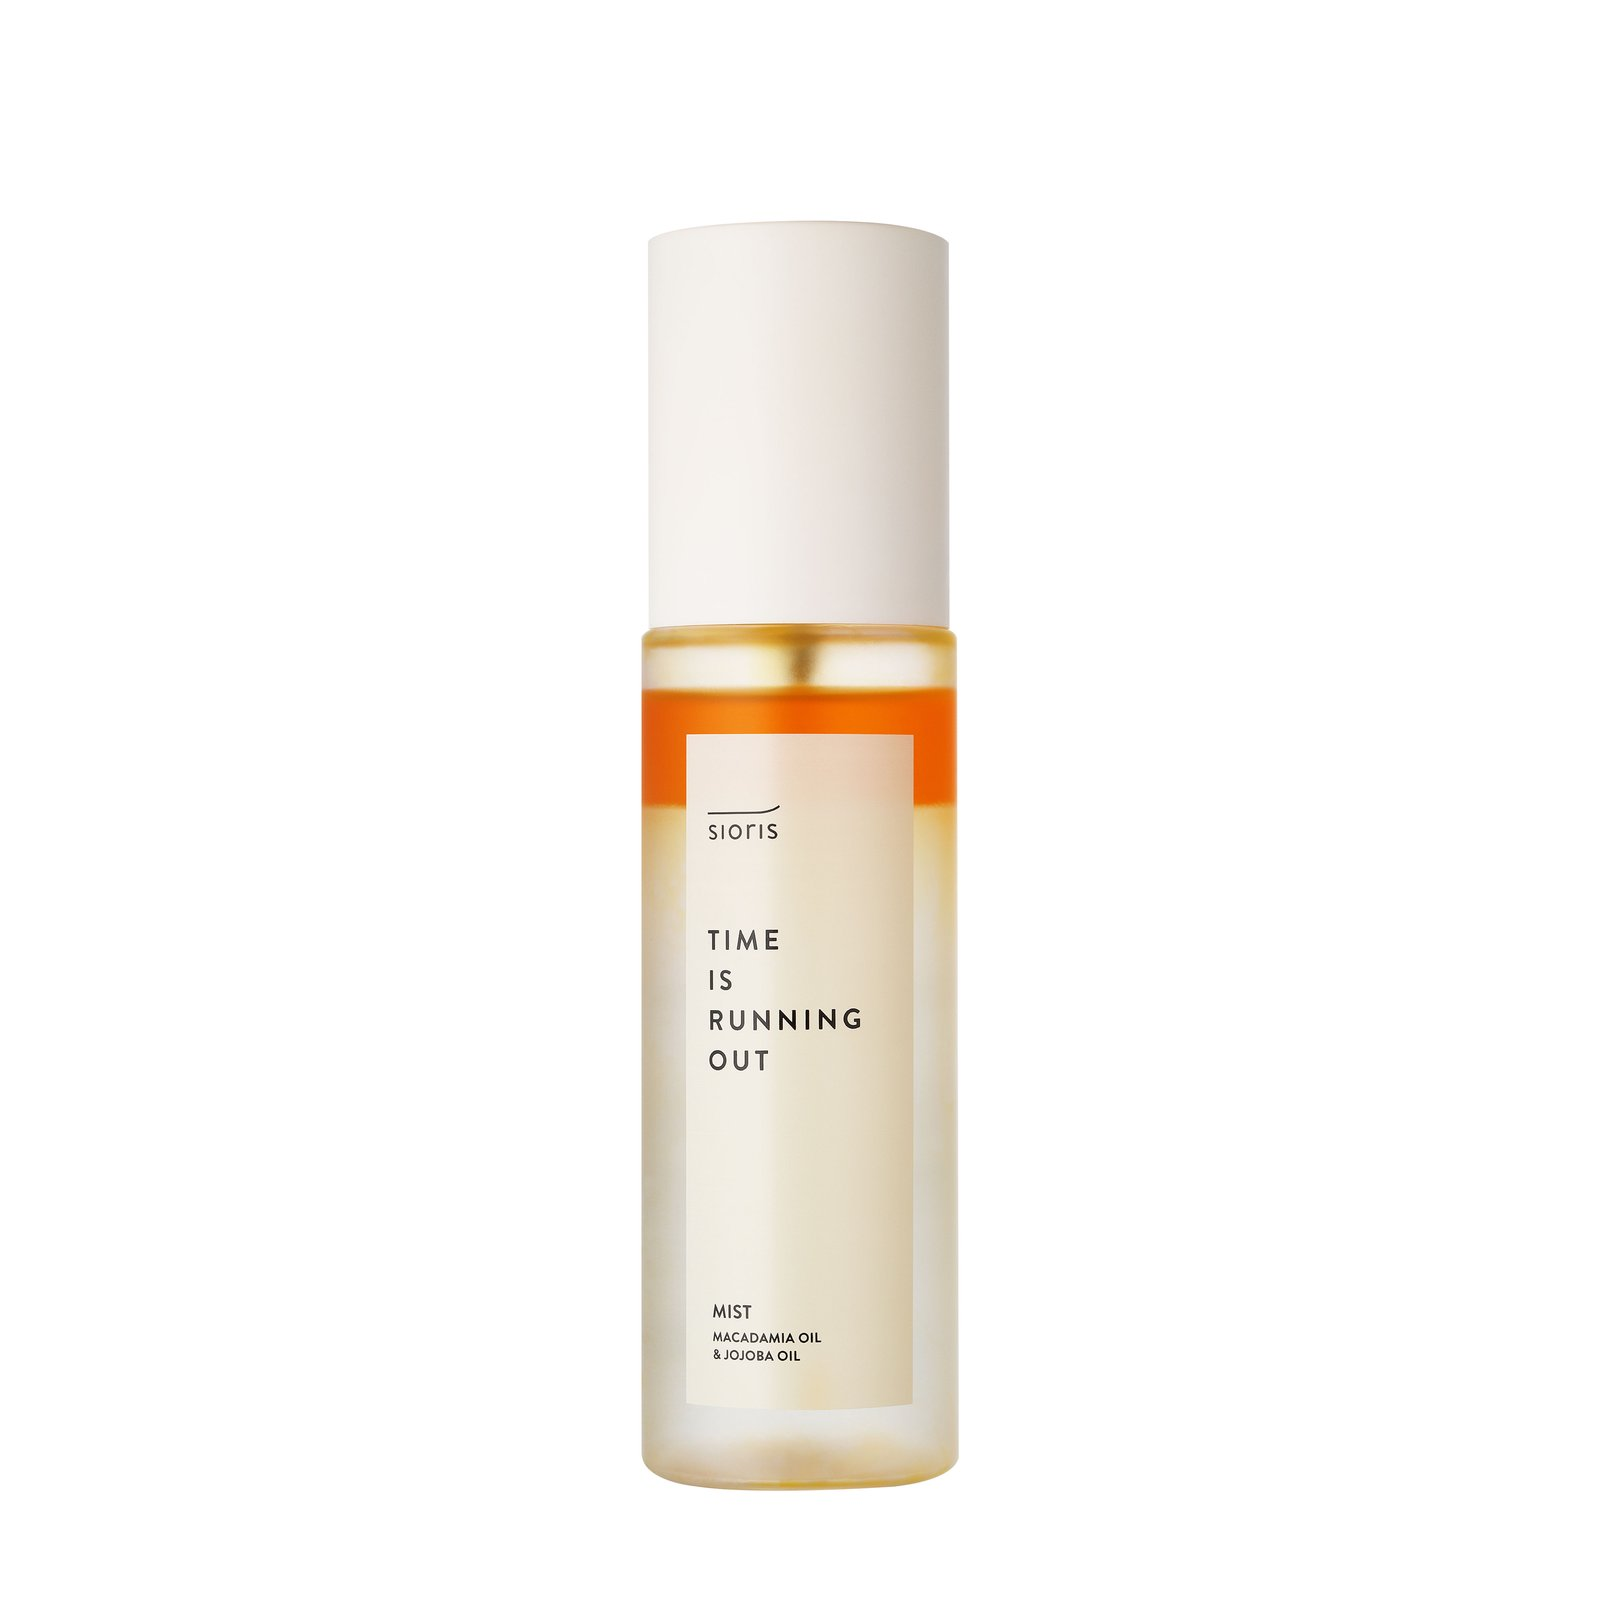 sioris-time-is-running-out-mist-avis-revue-cosmetiques-coreens-clean